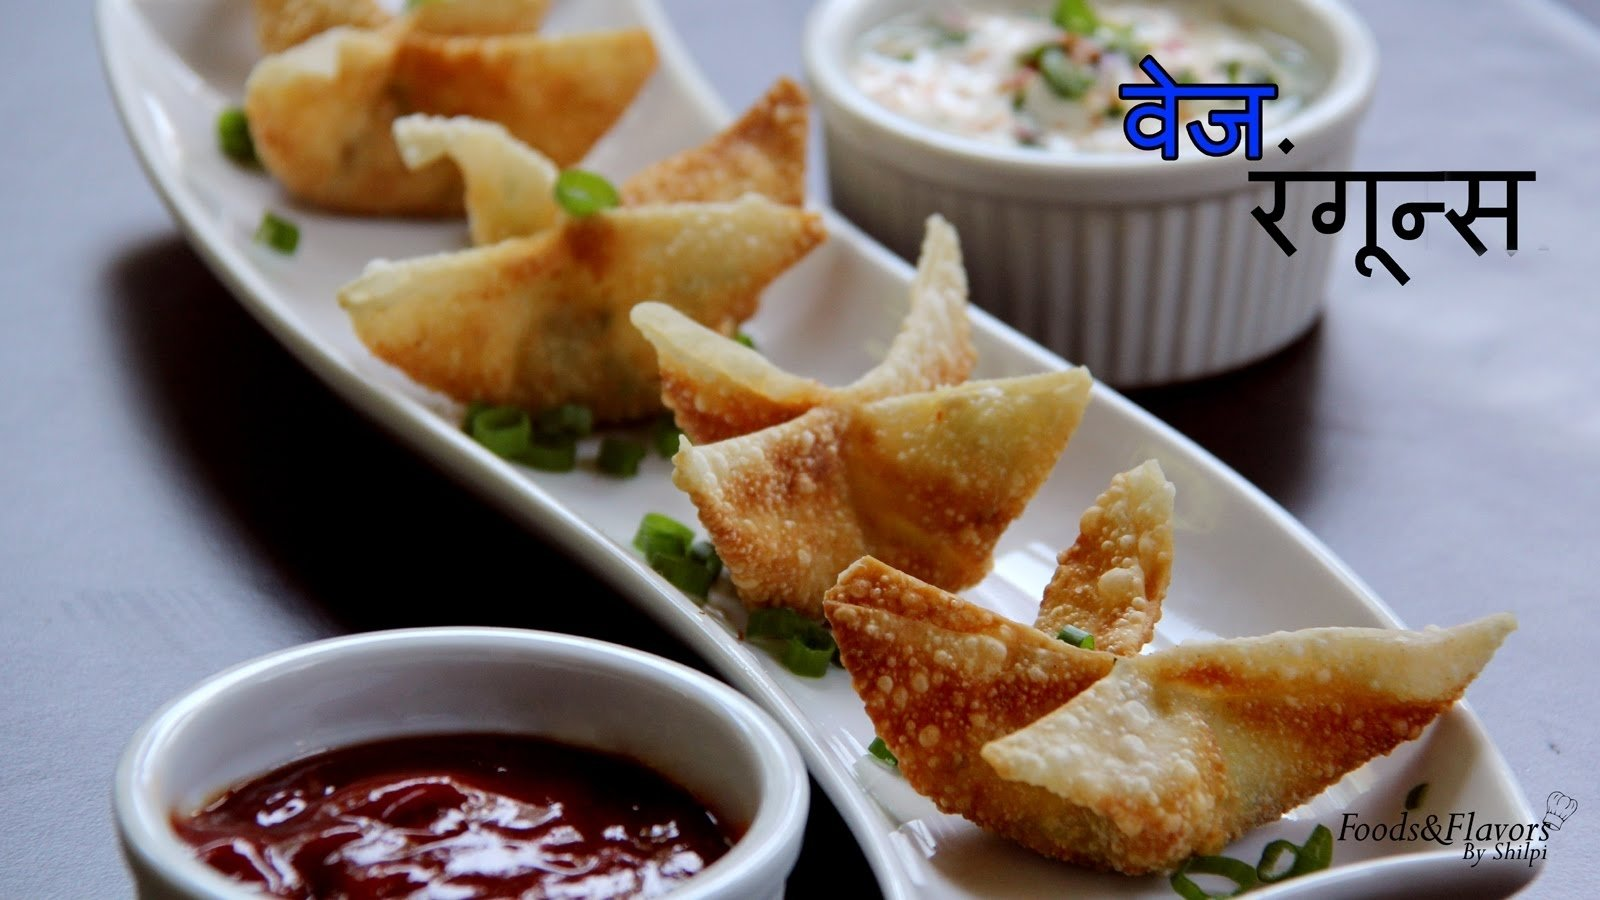 10 Famous Easy Snack Ideas For Kids cream cheese wontons recipe in hindi e0a4b5e0a587e0a49ce0a4bc e0a4b0e0a482e0a497e0a582e0a4a8e0a58de0a4b8 2 2020